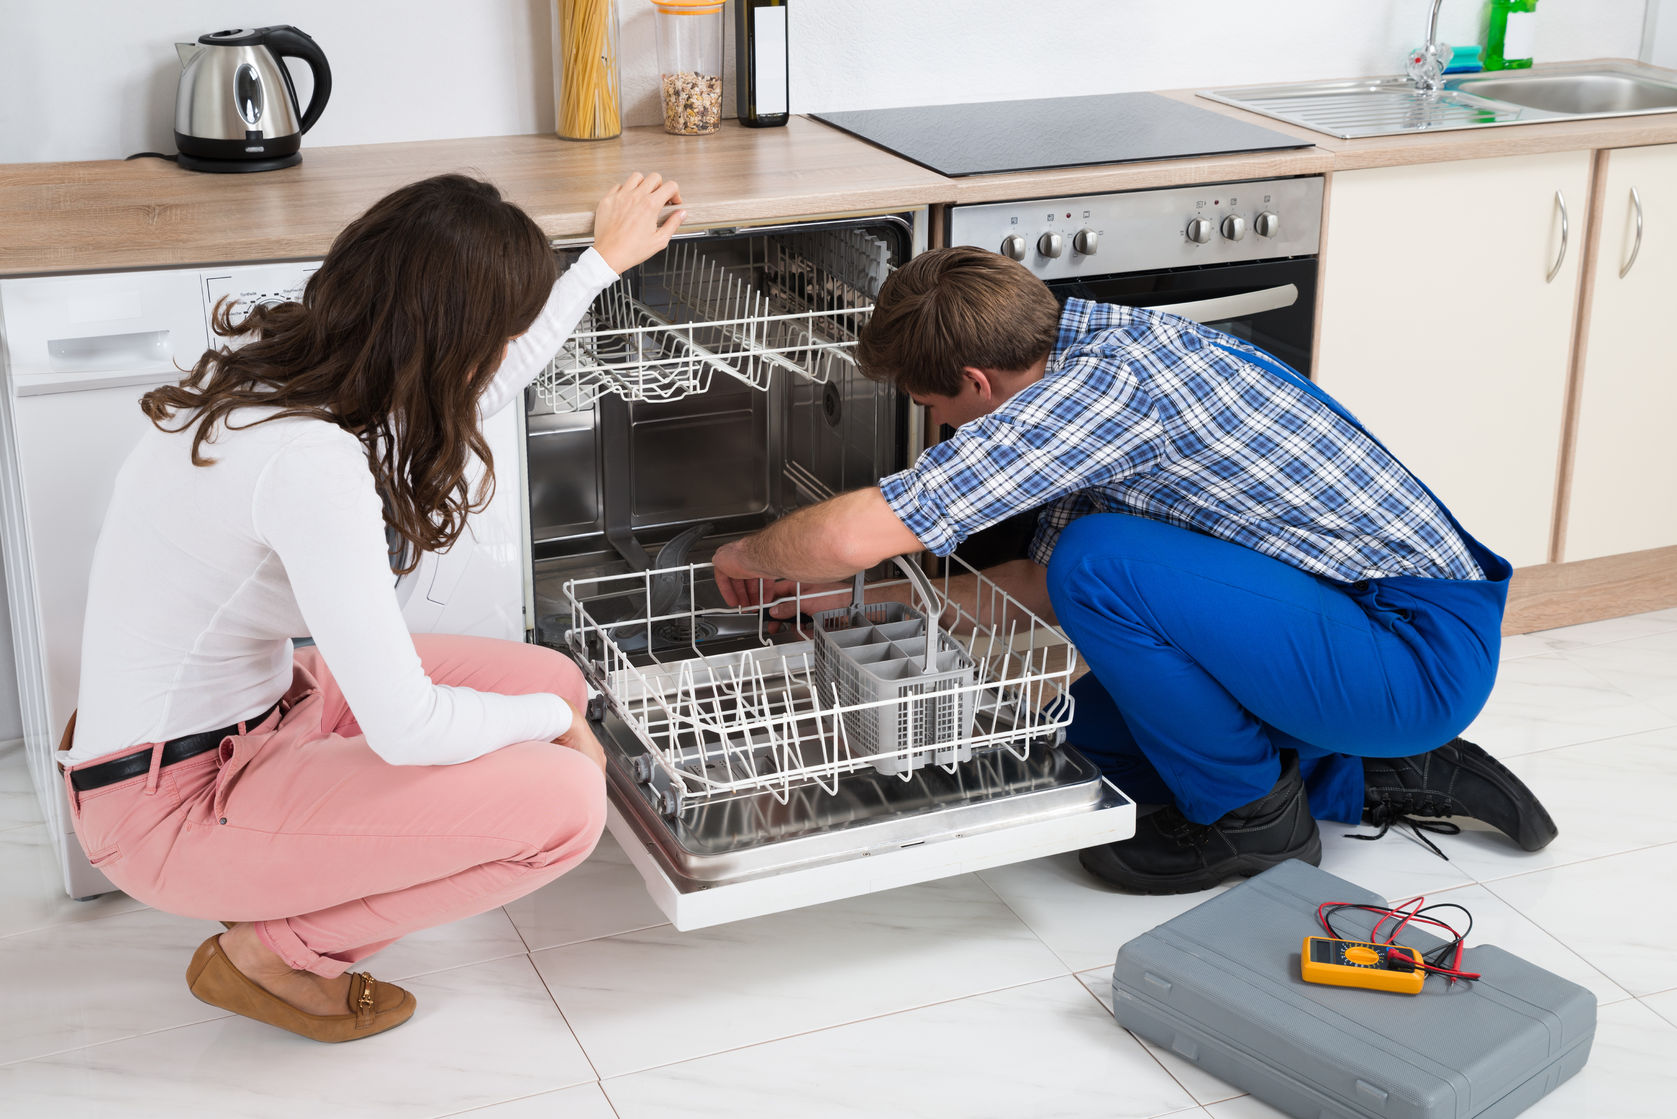 Dishwasher Repair Services and Installation - Chicago Appliance ...